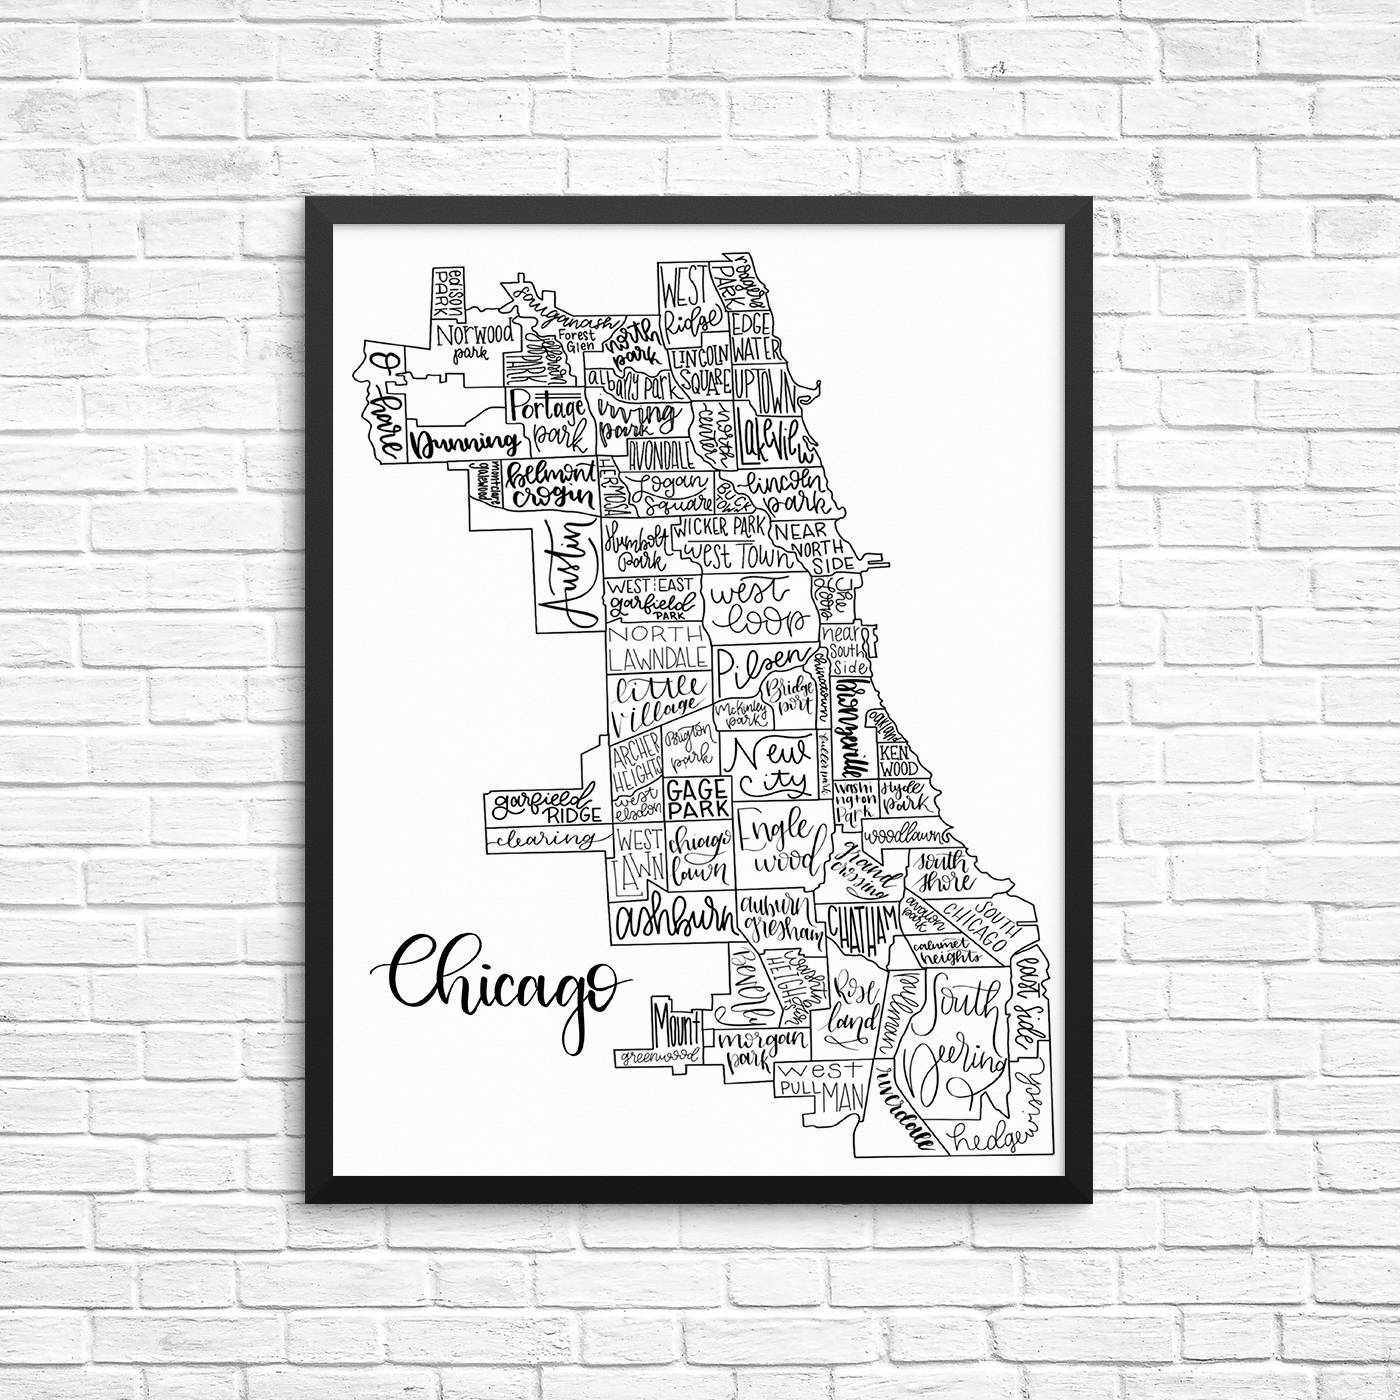 Hand Lettered Chicago Neighborhood Map Home Decor Wall Art Regarding 2017 Chicago Neighborhood Map Wall Art (View 9 of 20)